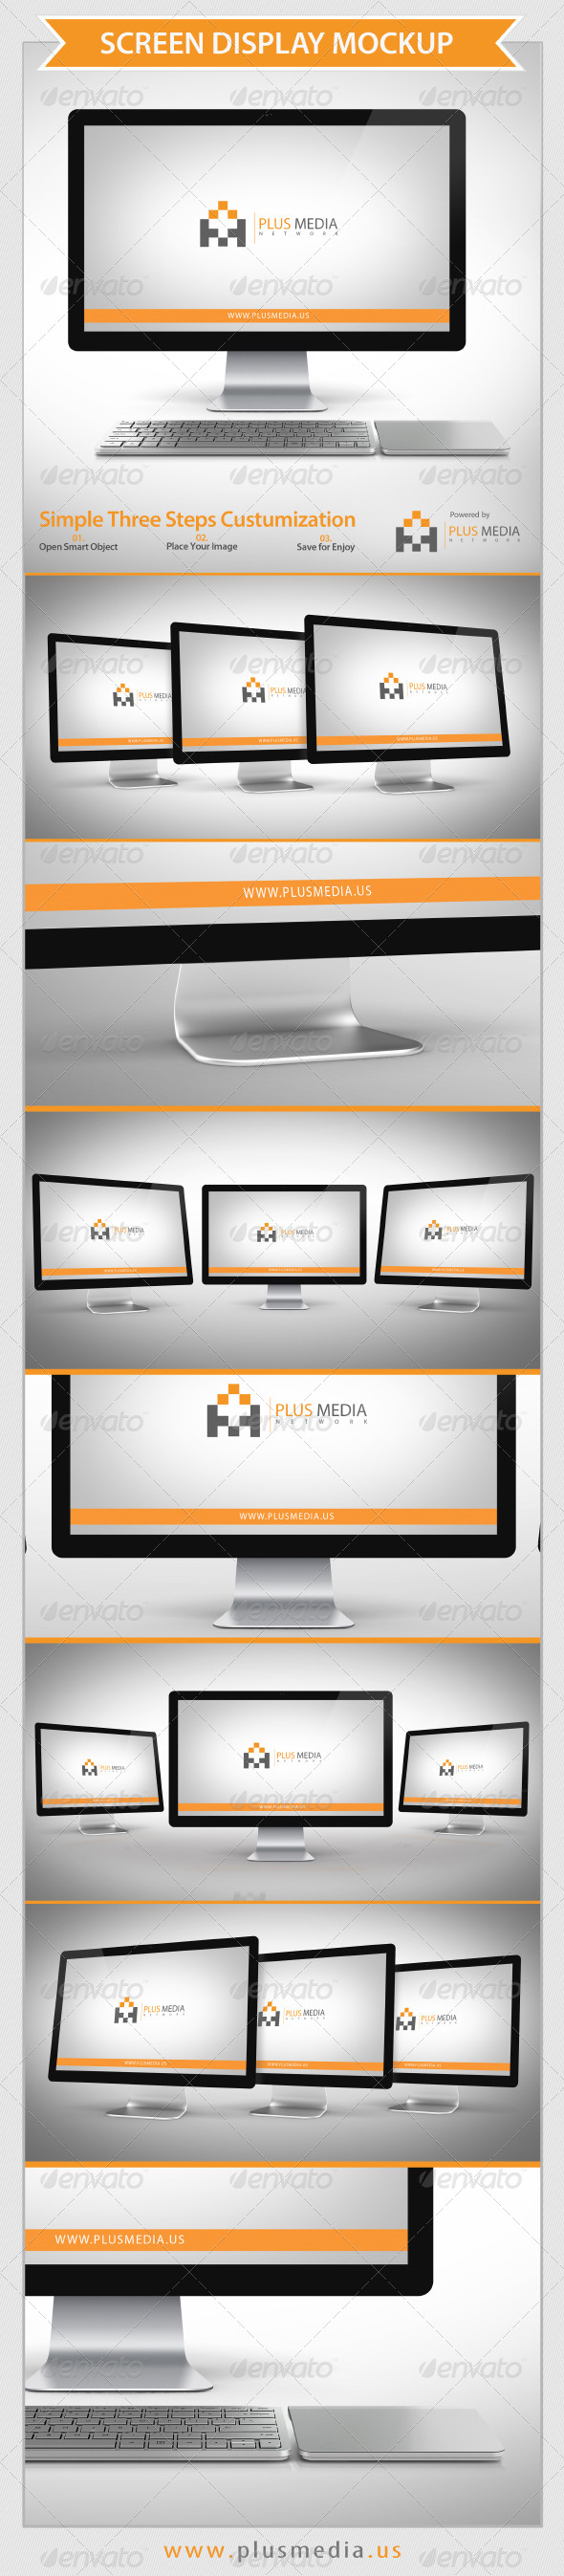 Screen Display Mockup - Product Mock-Ups Graphics